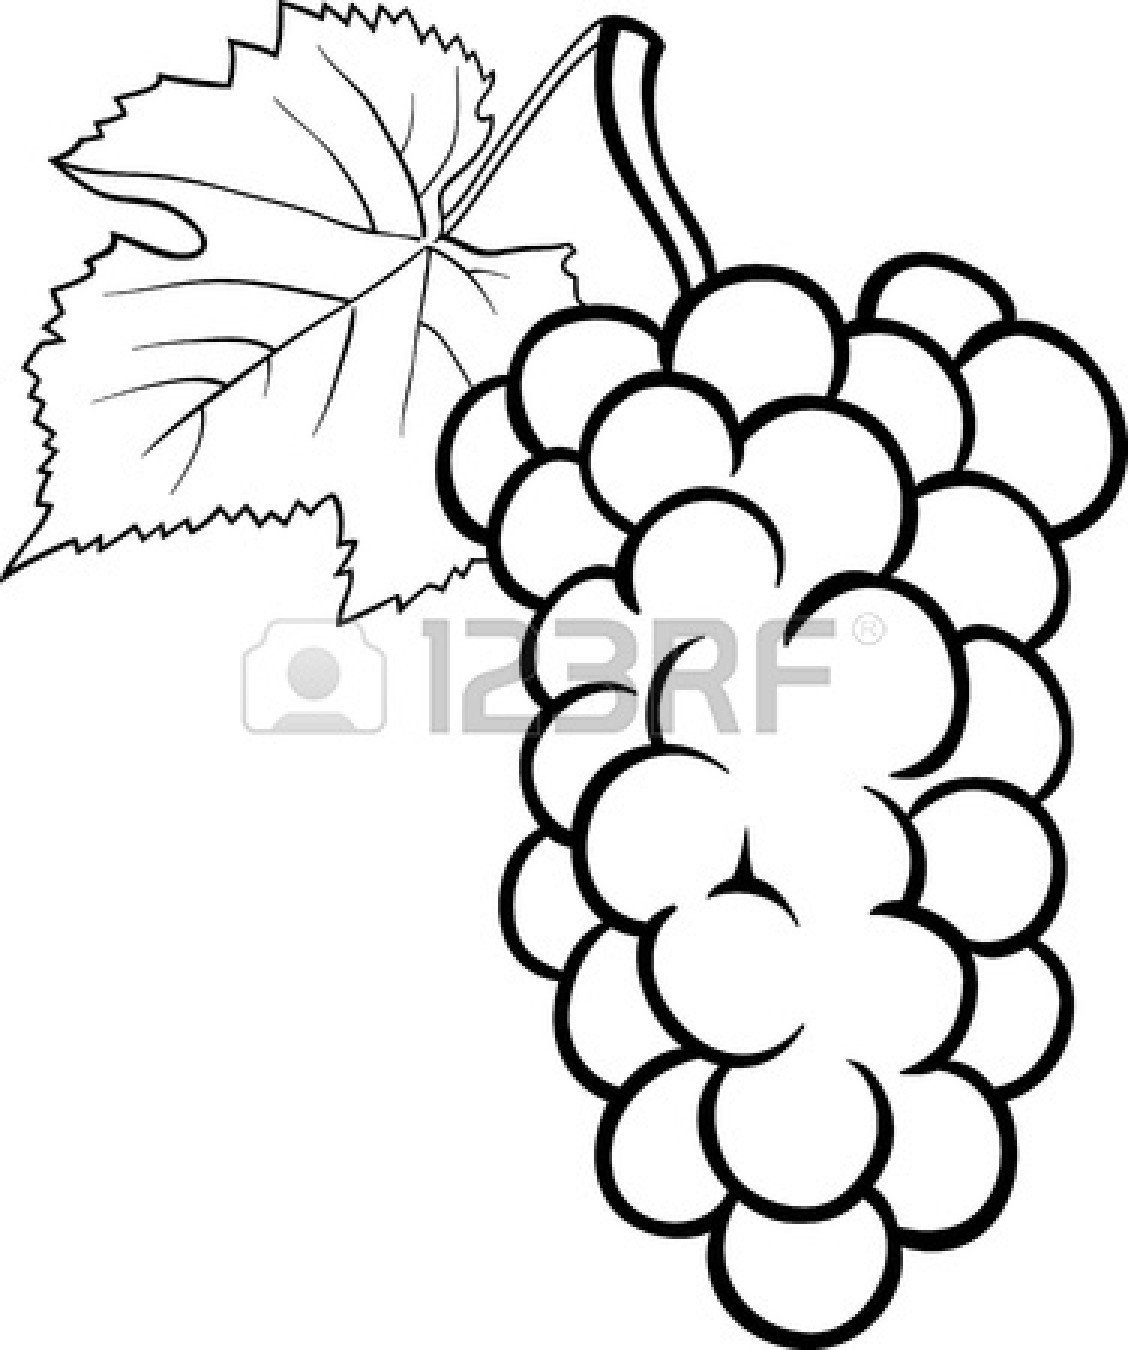 Grape clipart leafy vegetable Vegetables 2017 Fruit Hand Drawn